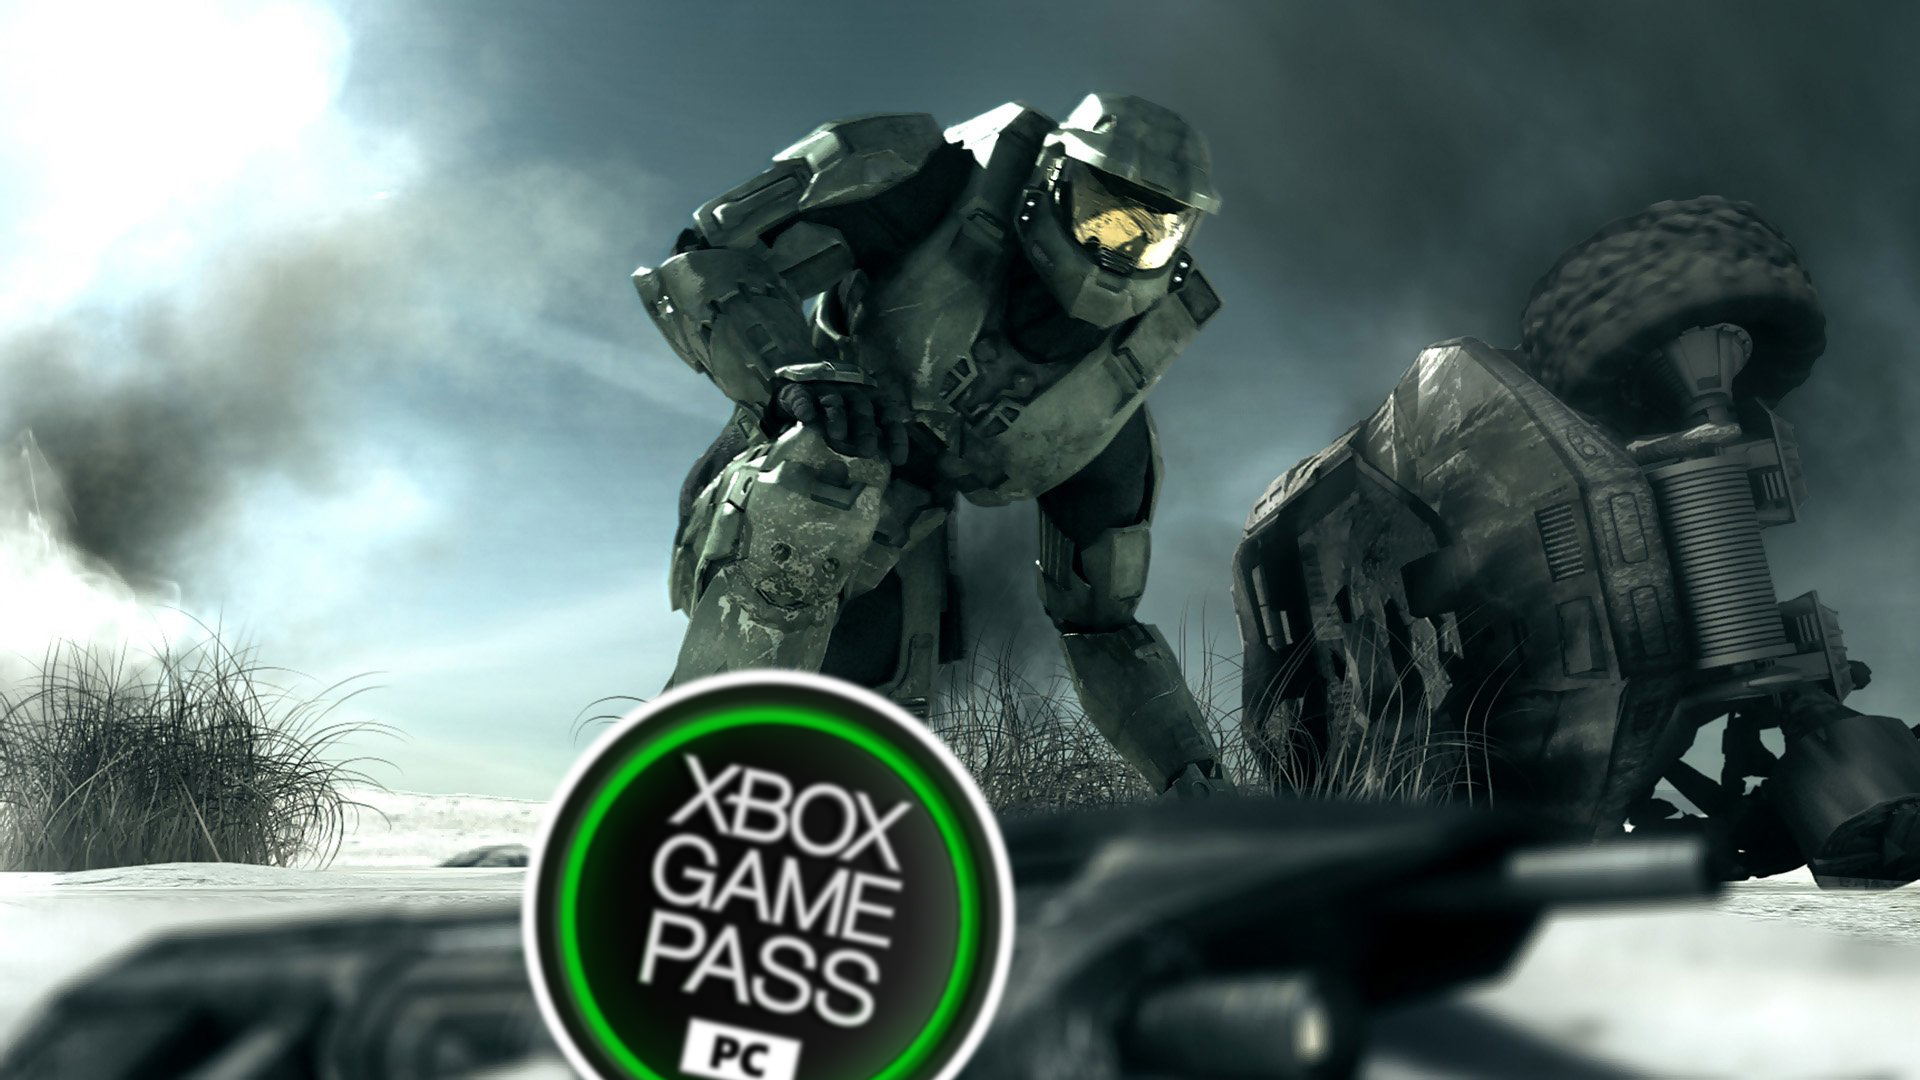 Best Xbox Game Pass Pc Games In 2020 Laptop Mag